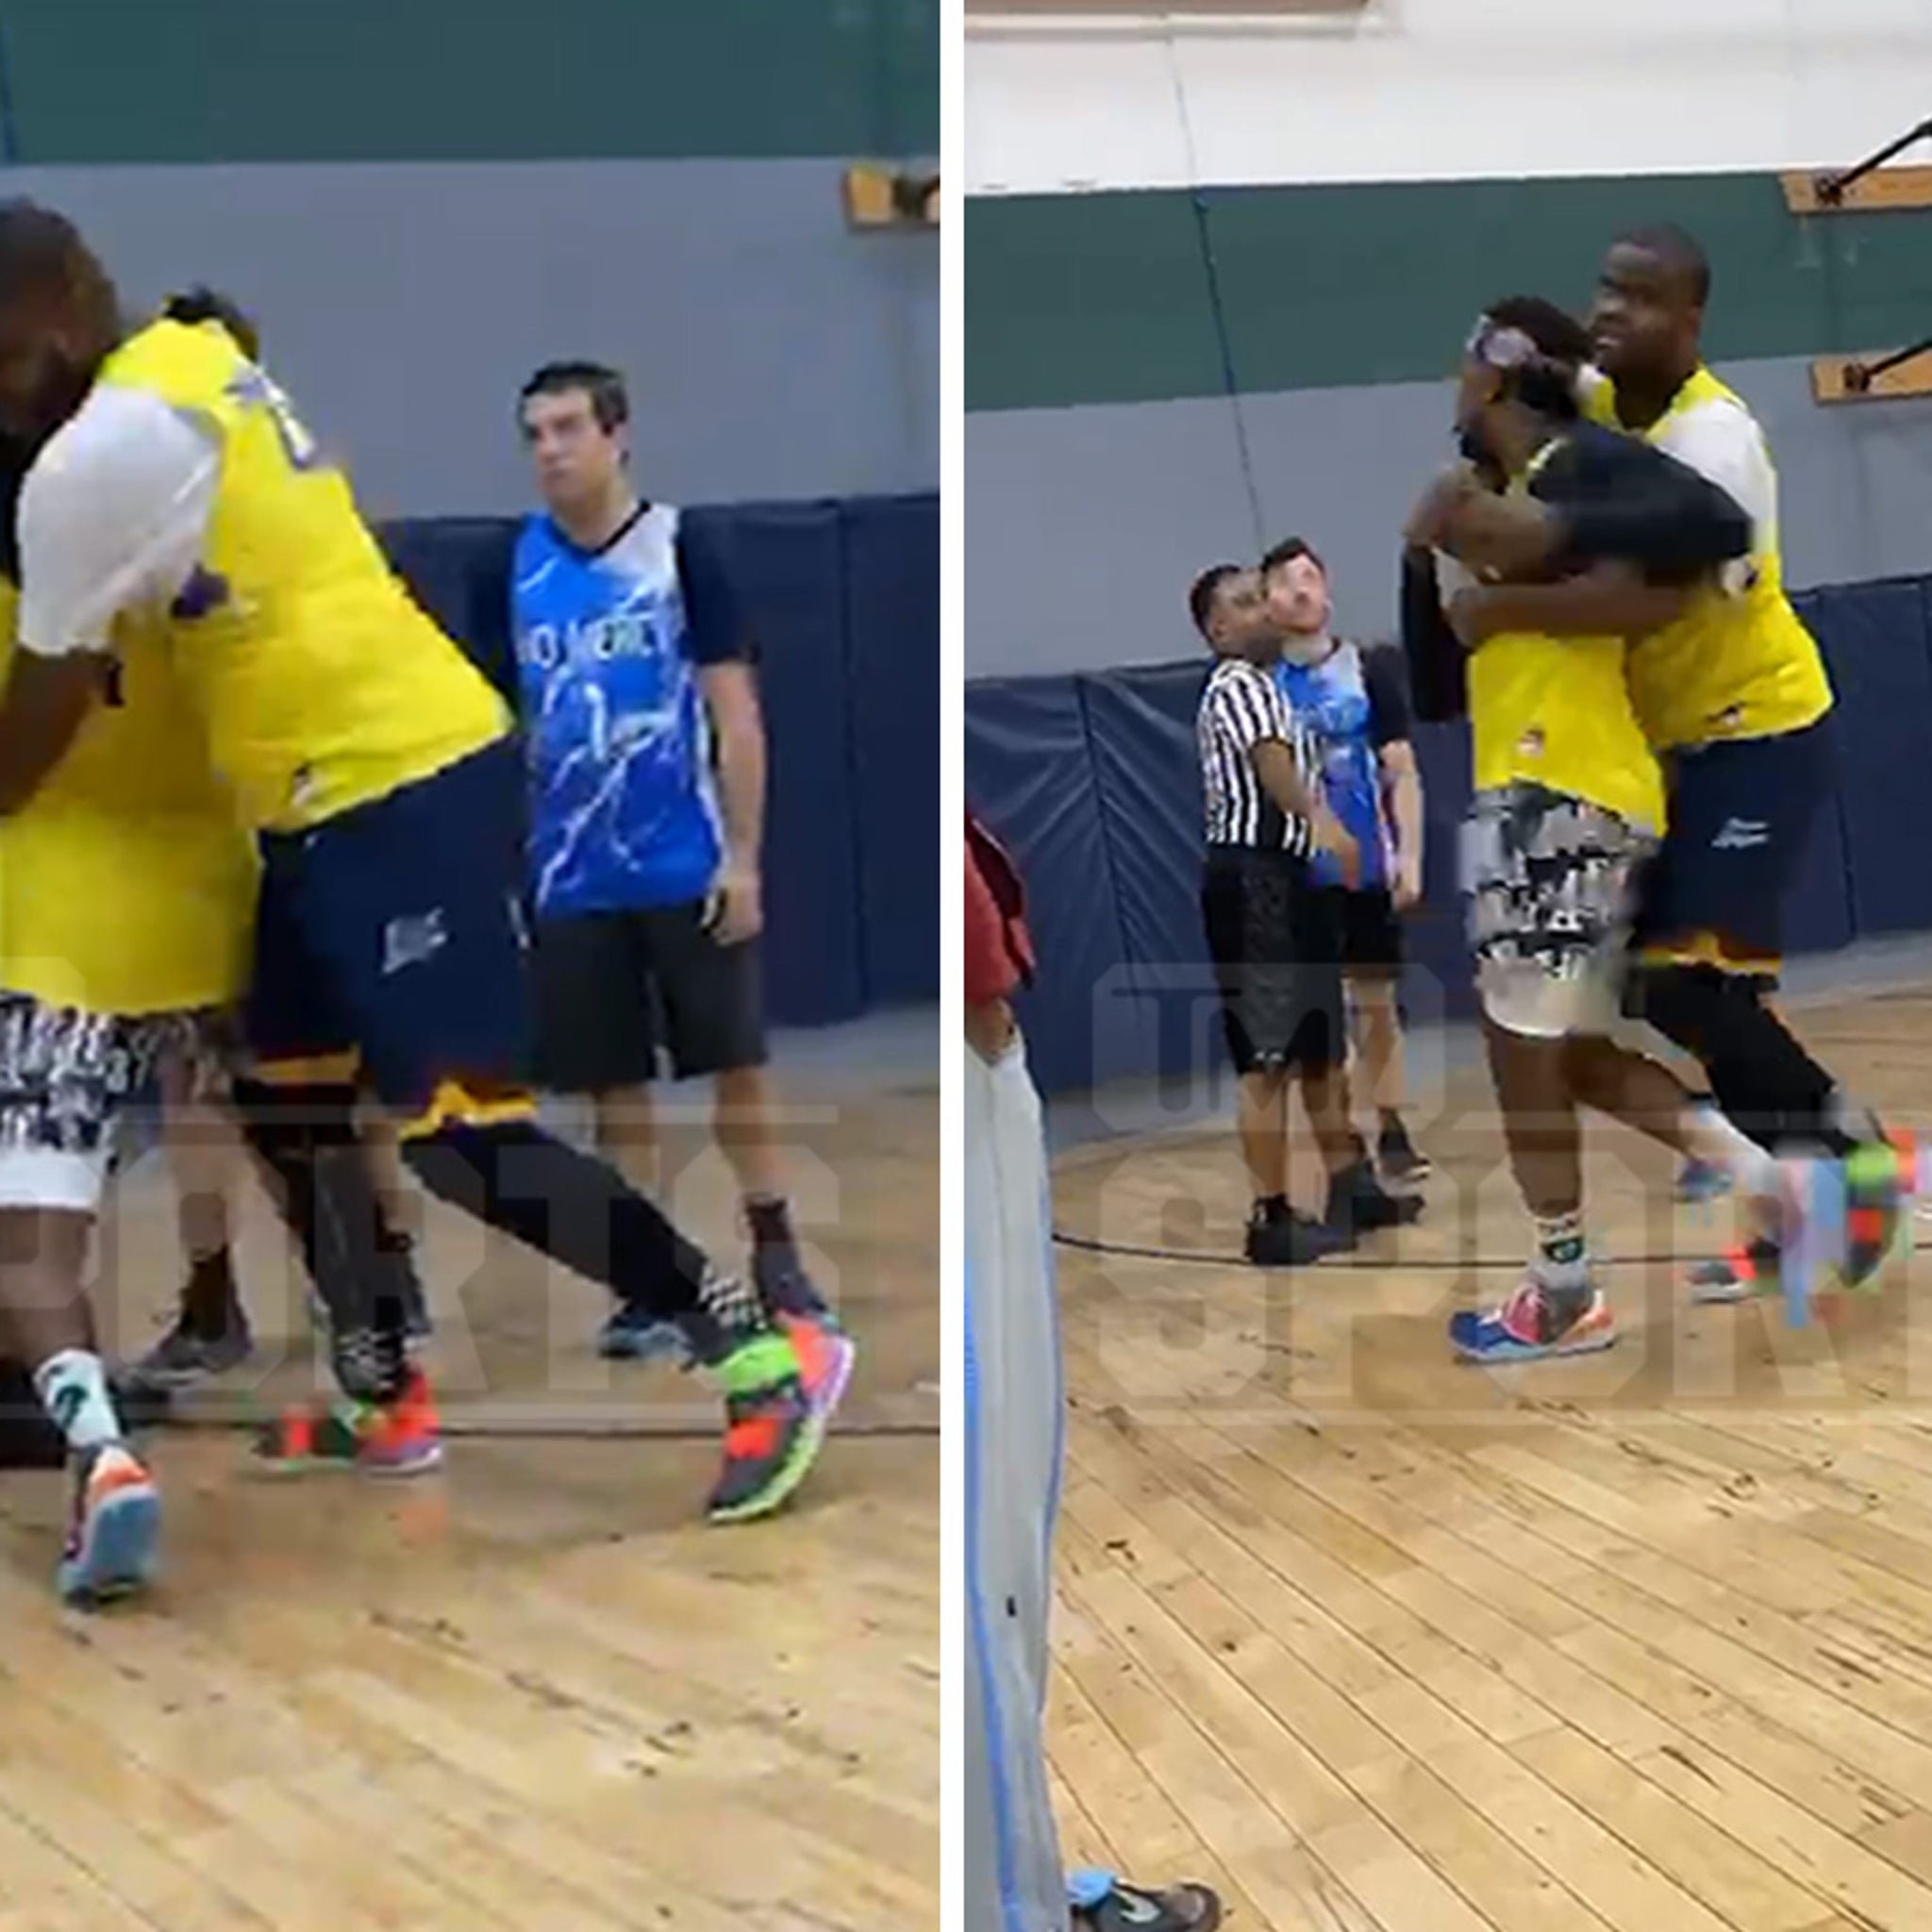 Nick Young Forfeits Rec League Championship After On-Court Altercation